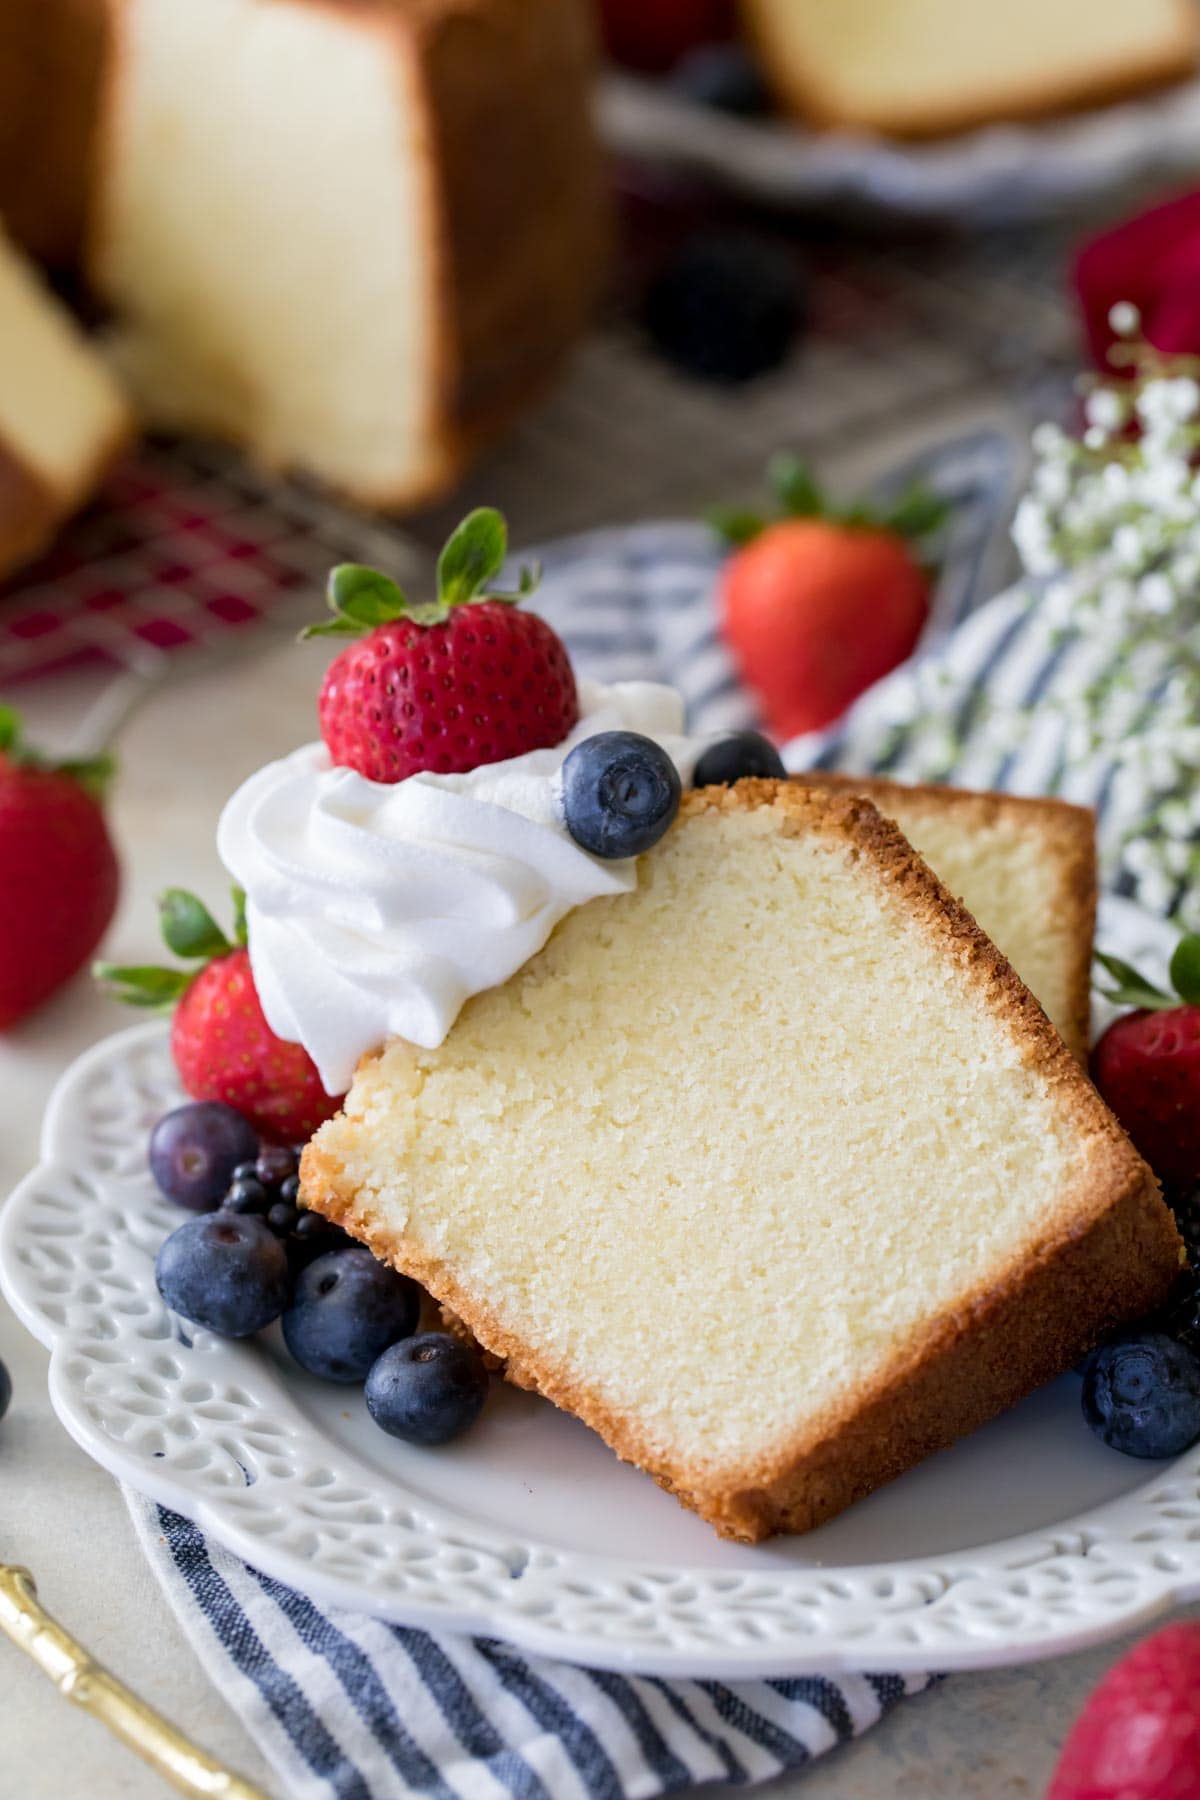 Two slices of pound cake topped with whipped cream and berries